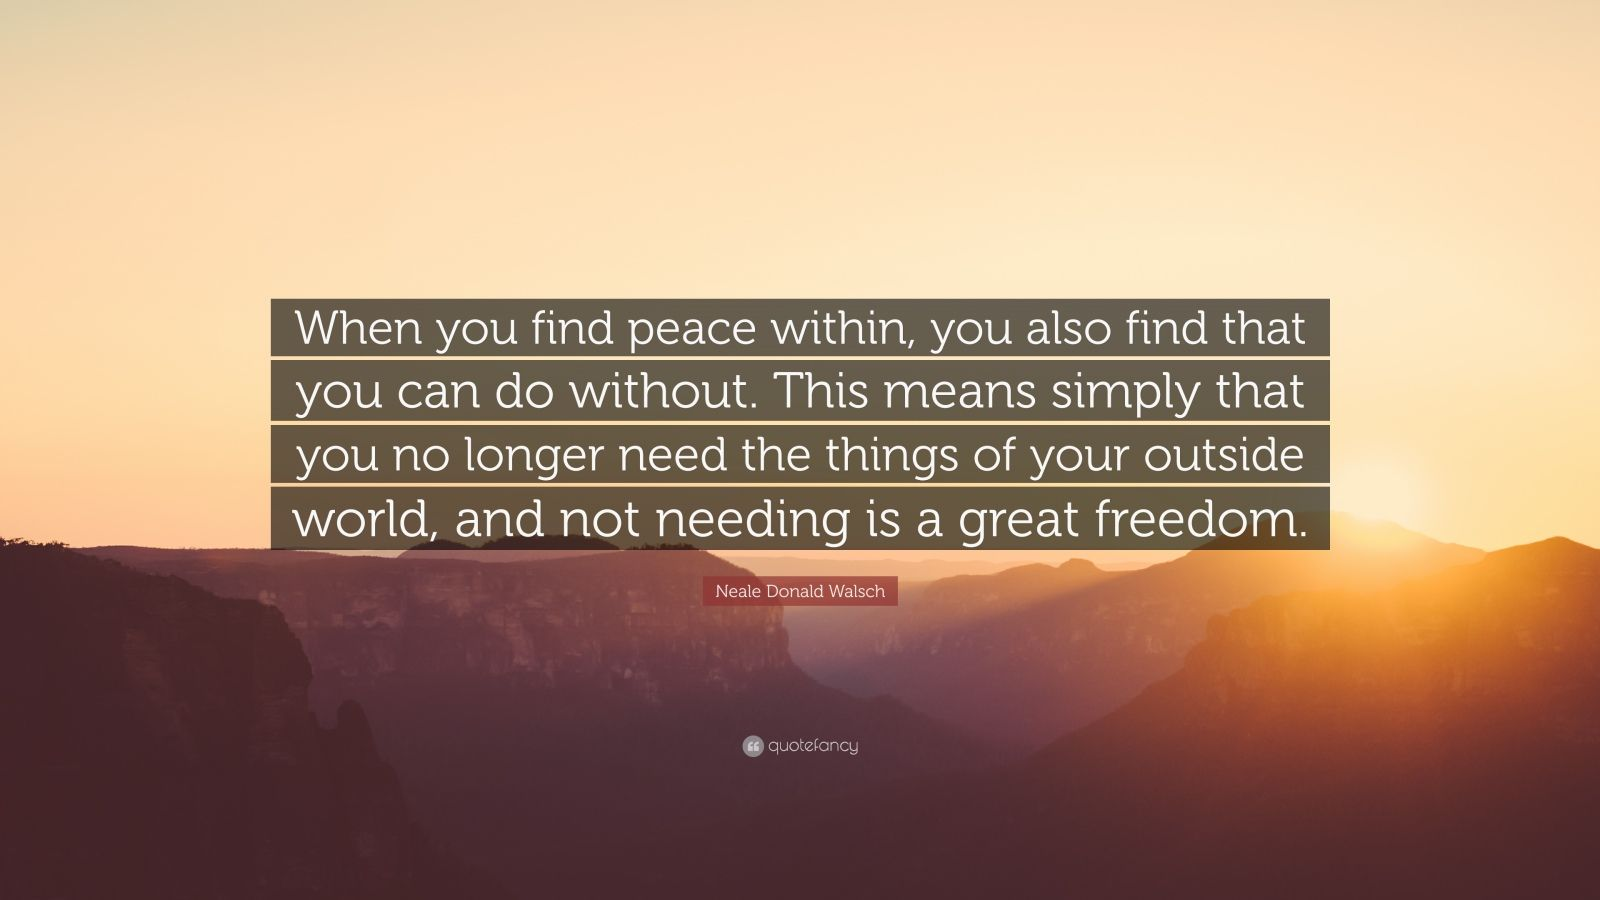 "Neale Donald Walsch Quote: ""When you find peace within, you also find that you can do without. This means simply that you no longer need the things of your outside world, and not needing is a great freedom."""